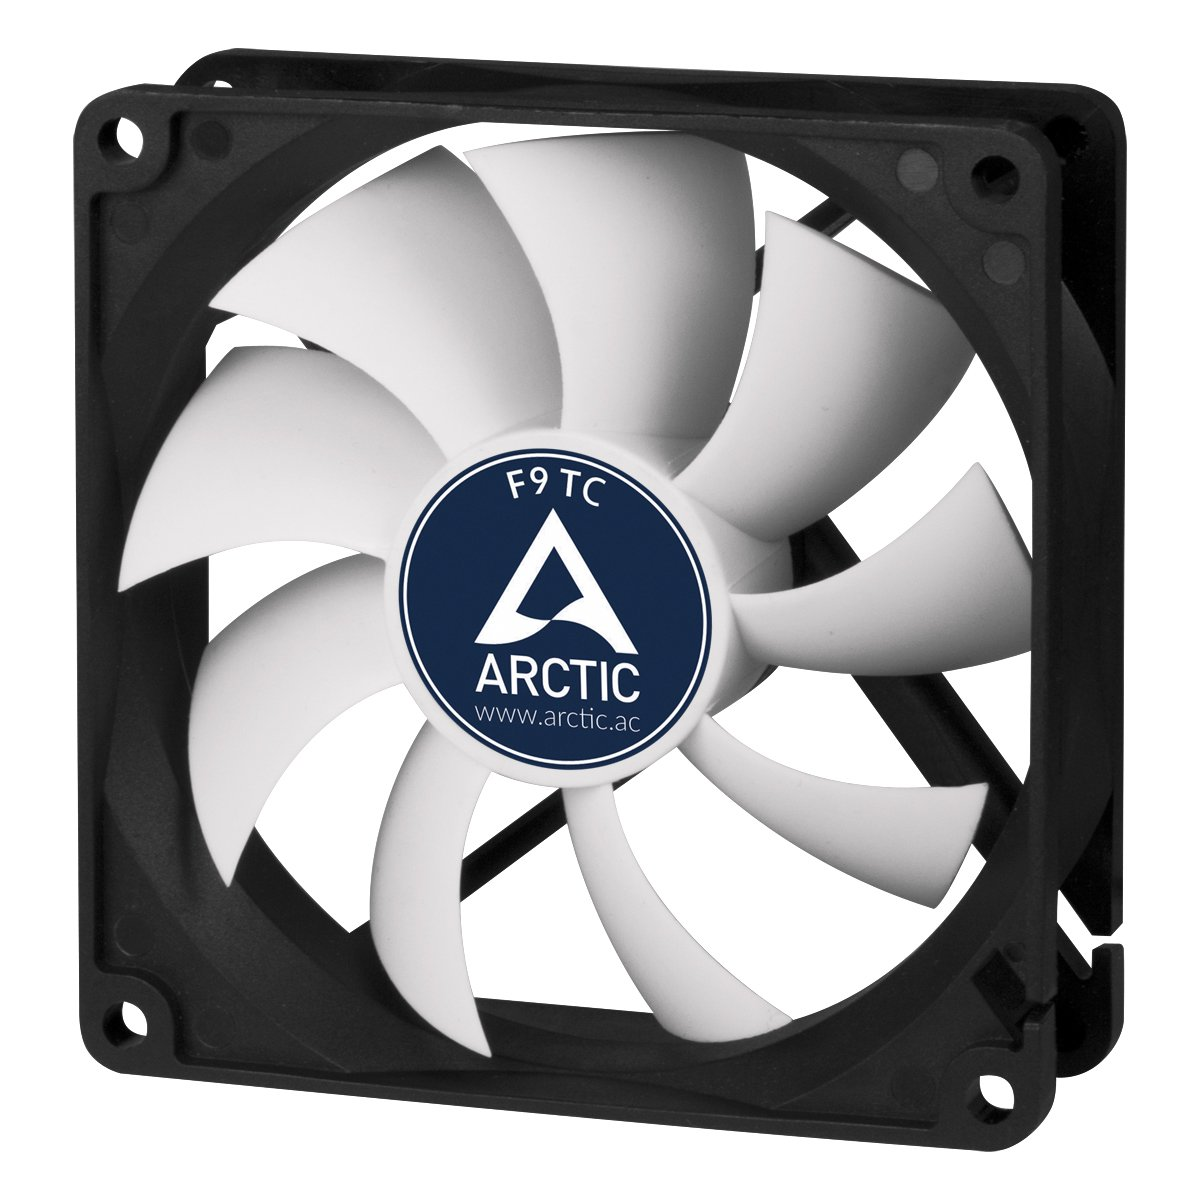 Silent Cooler with Standard Case PWM-Signal regulates Fan Speed ARCTIC F9 PWM Push- or Pull Configuration possible 92 mm PWM Case Fan